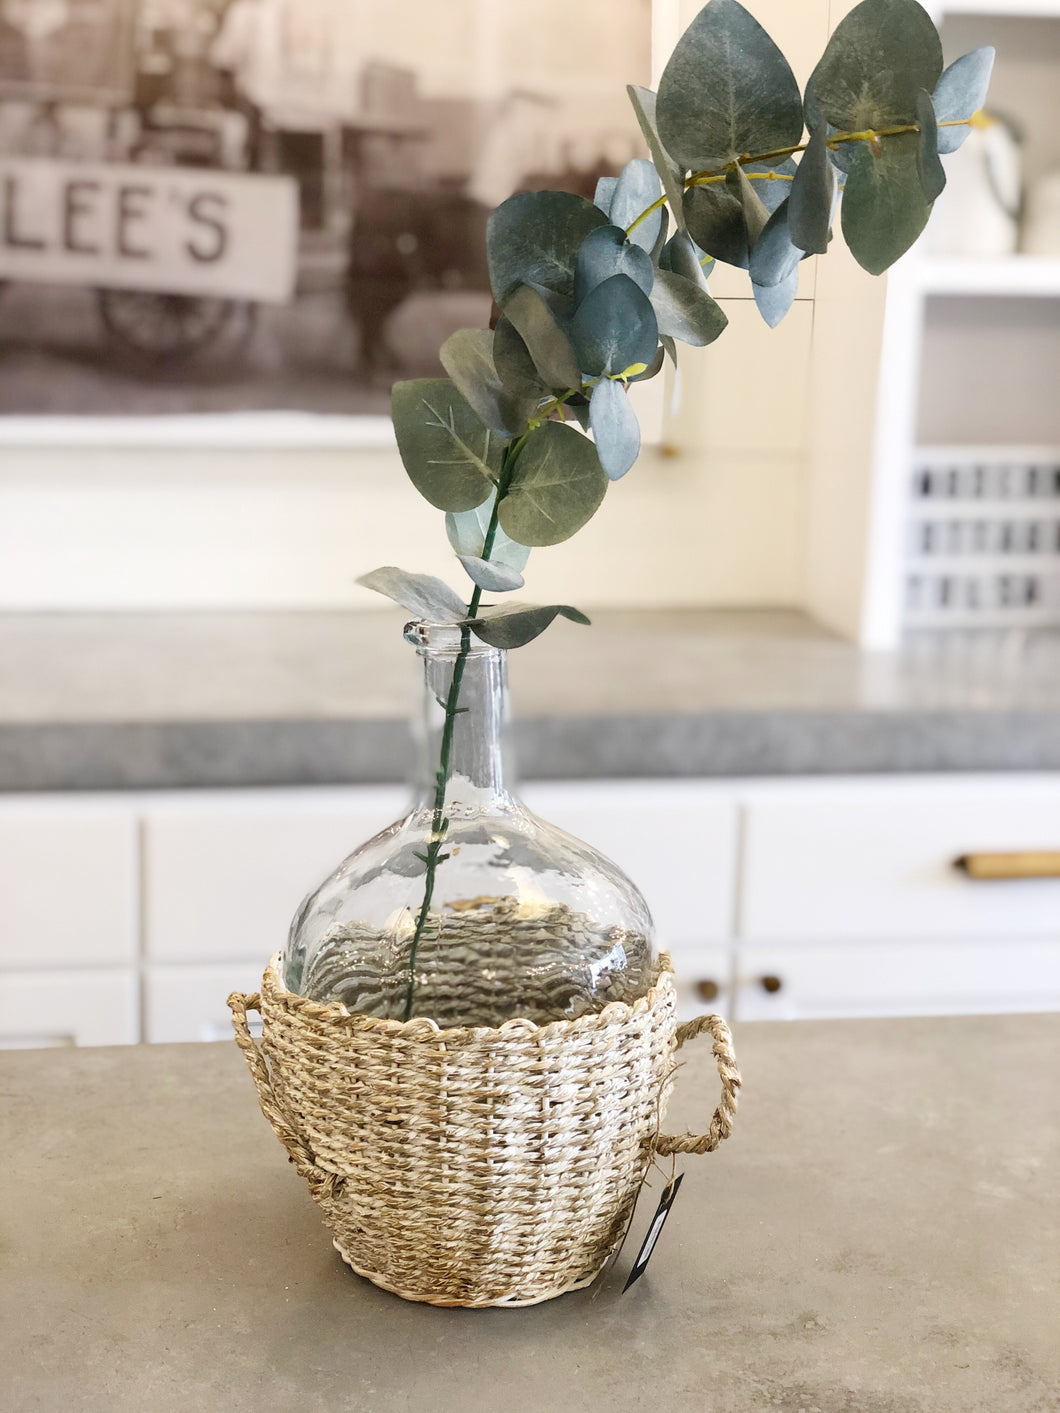 Glass Bottle in Whitewashed Basket